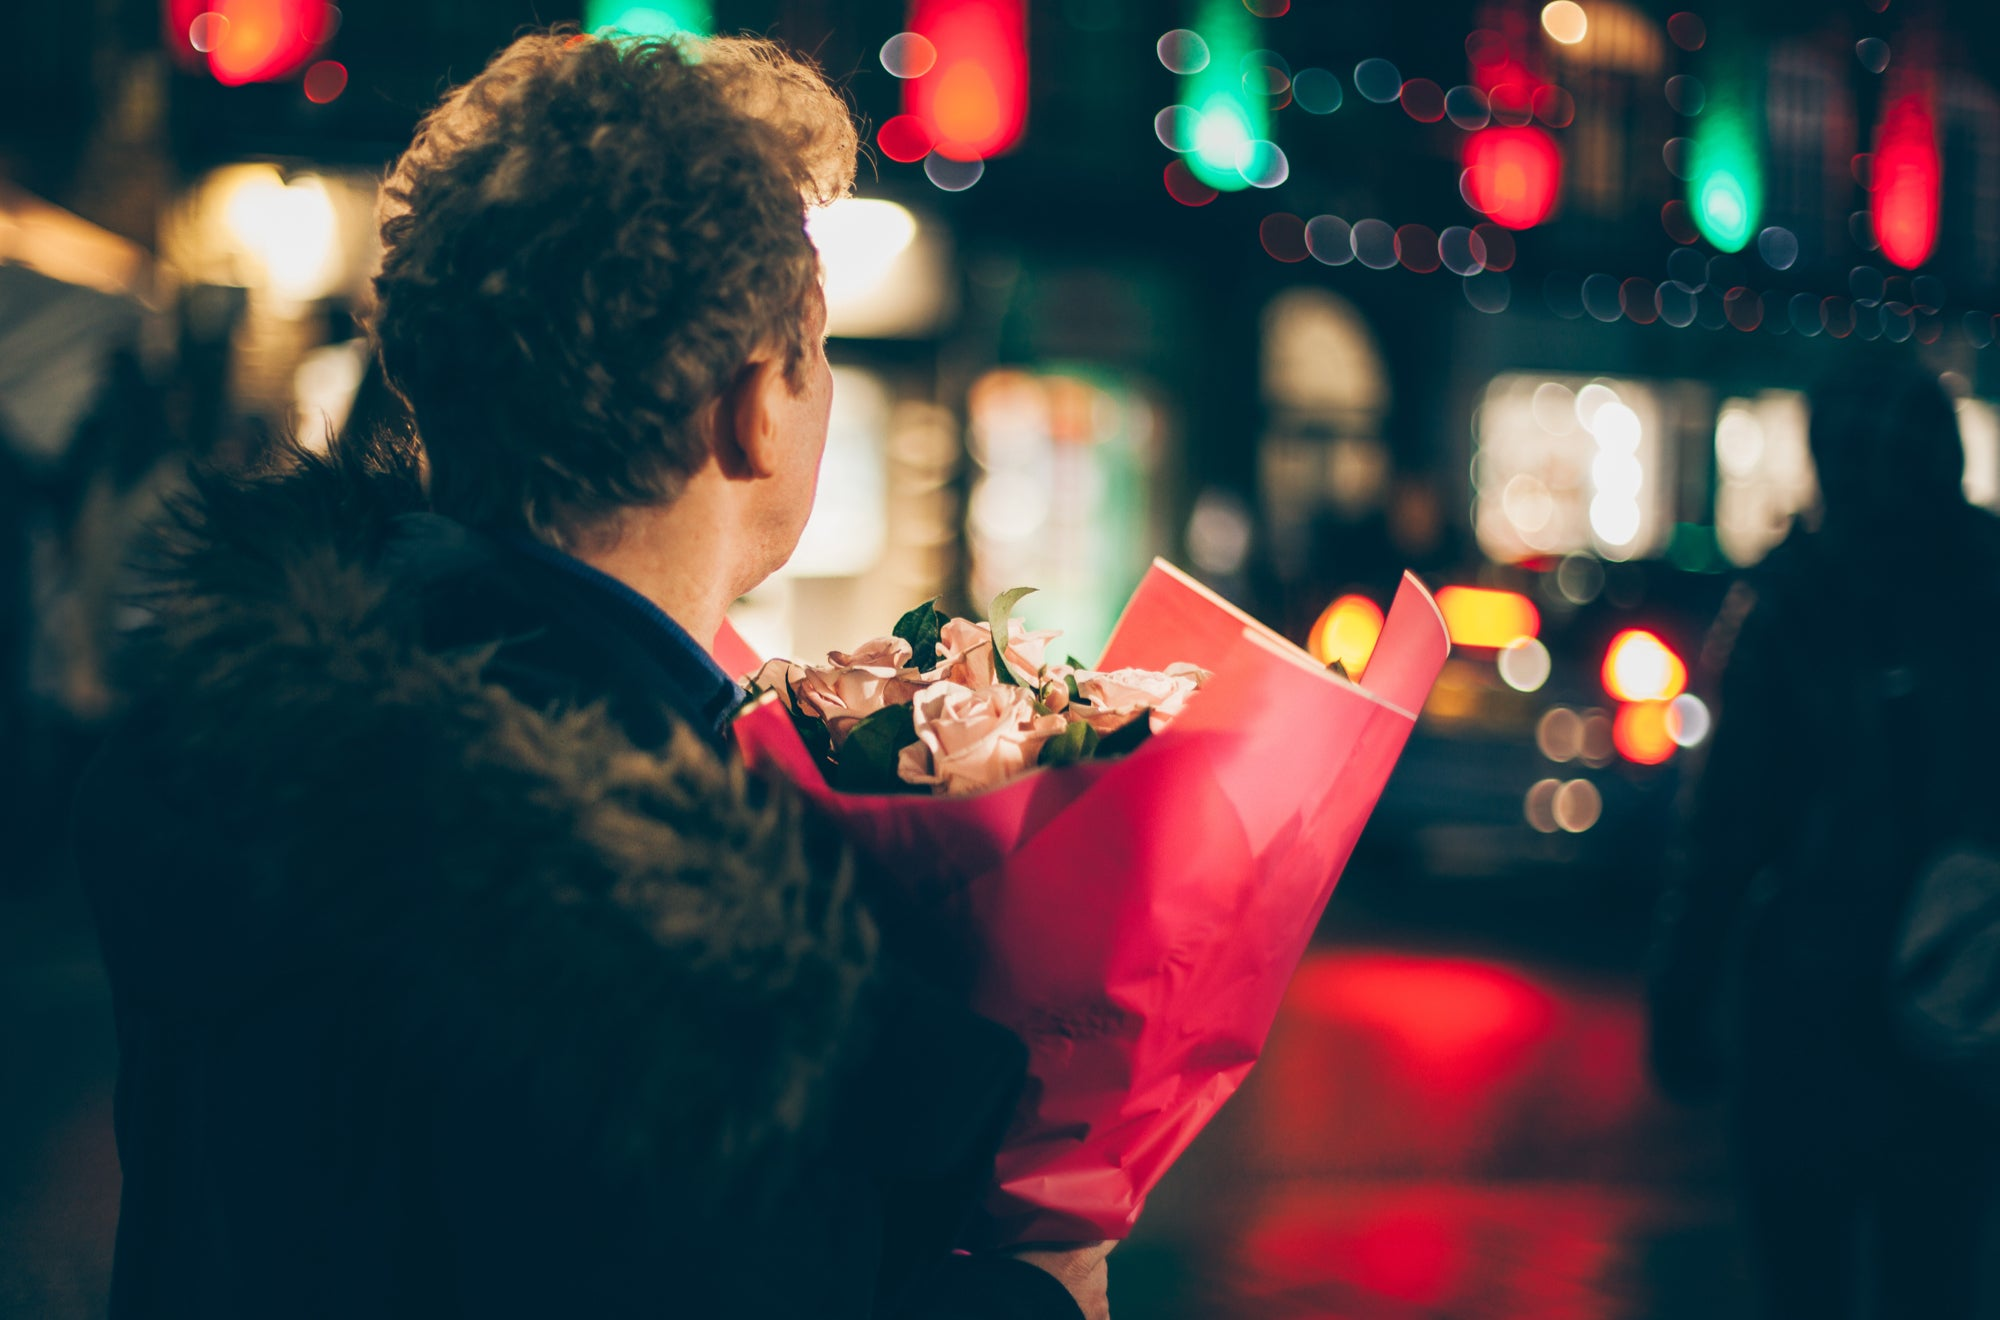 Man in a long-distance relationship wearing a fur coat holds a roses bouquet | Talsam